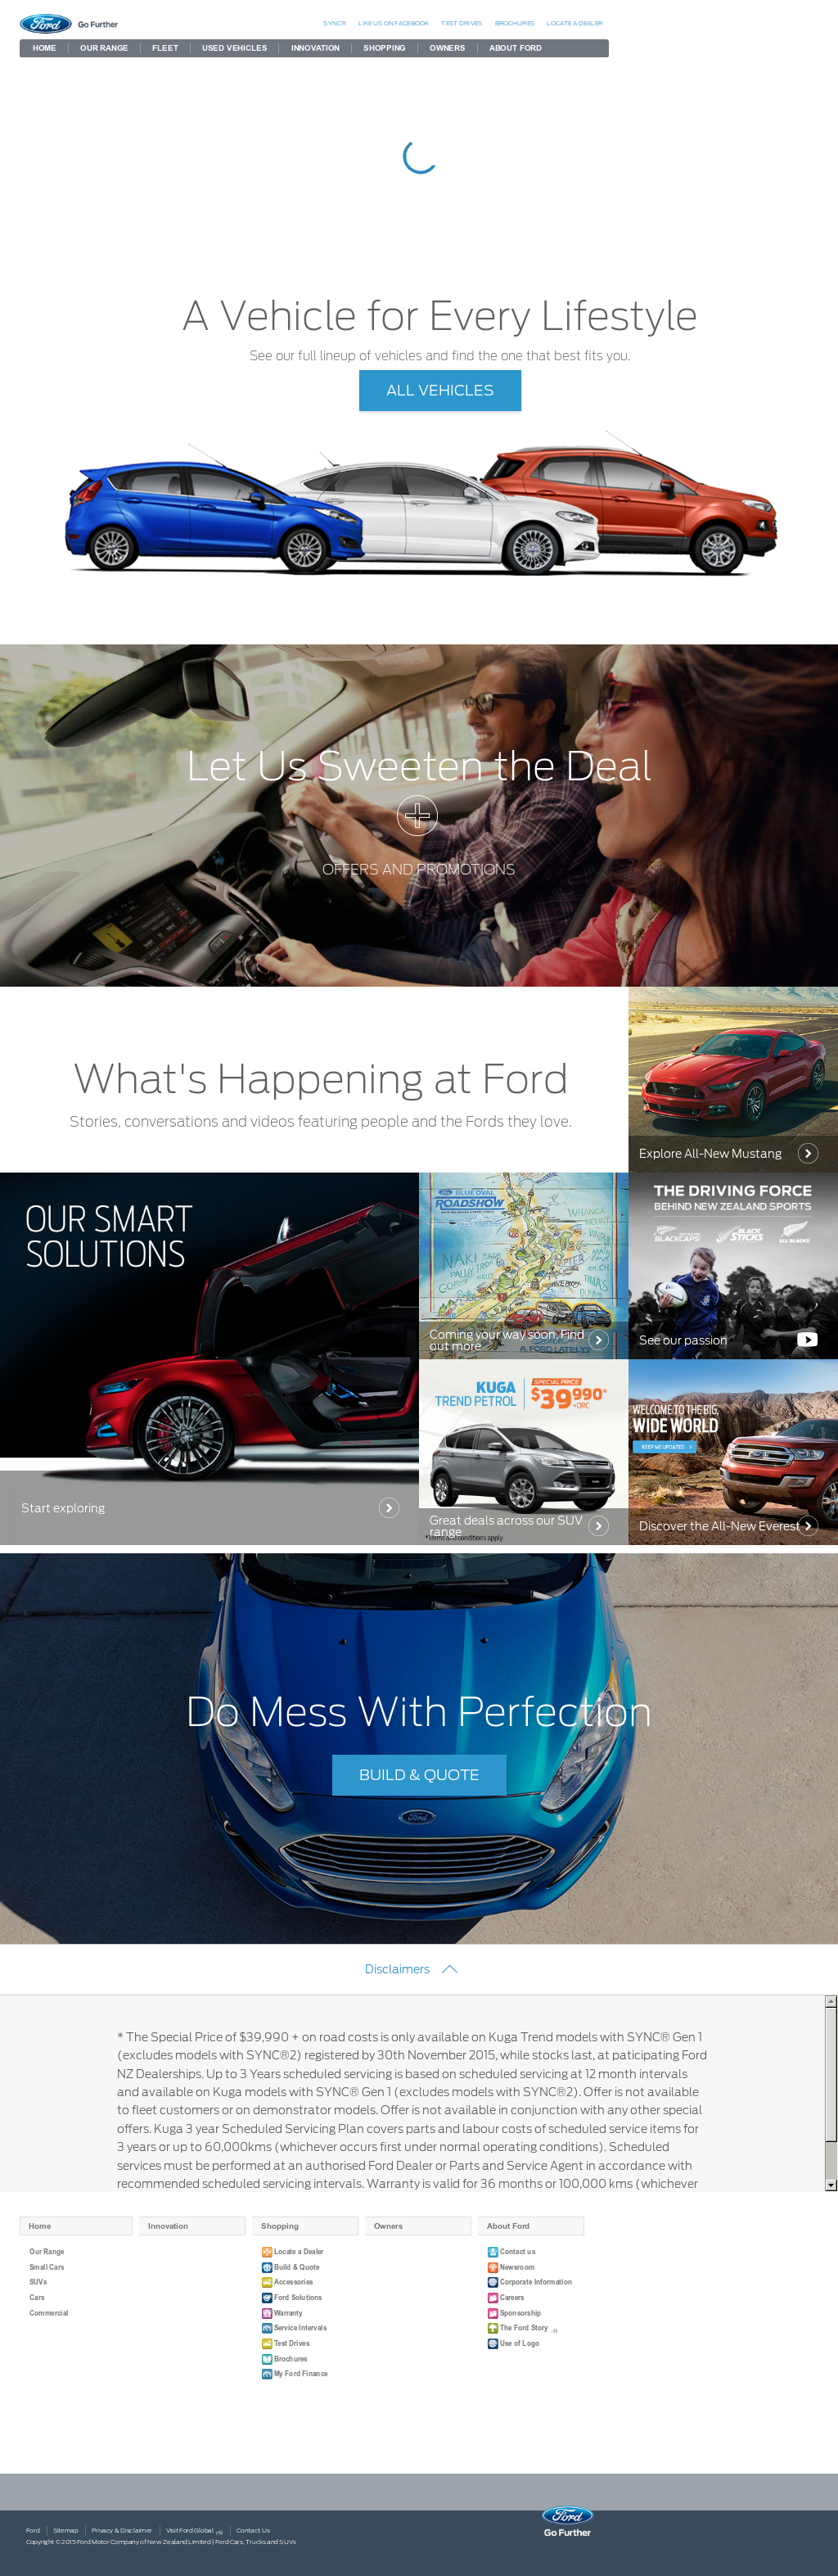 profiles of ford motor company and At ford motor company, we are committed not only to building high quality, dependable products, we are also committed to building a community of happy,.